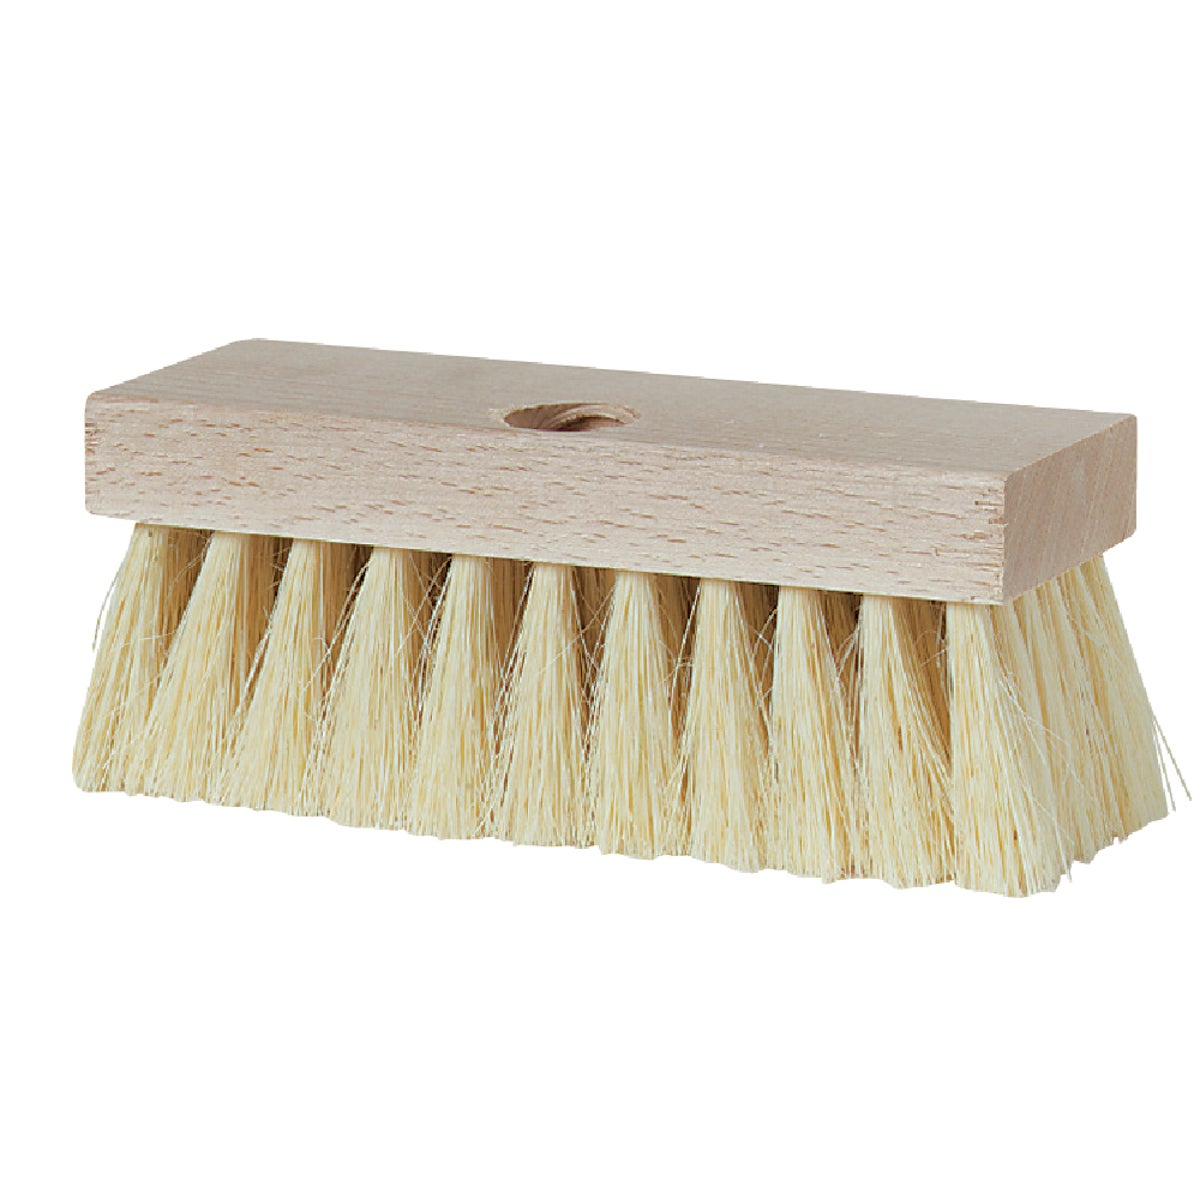 HURON ROOF BRUSH - 11949 by D Q B Ind